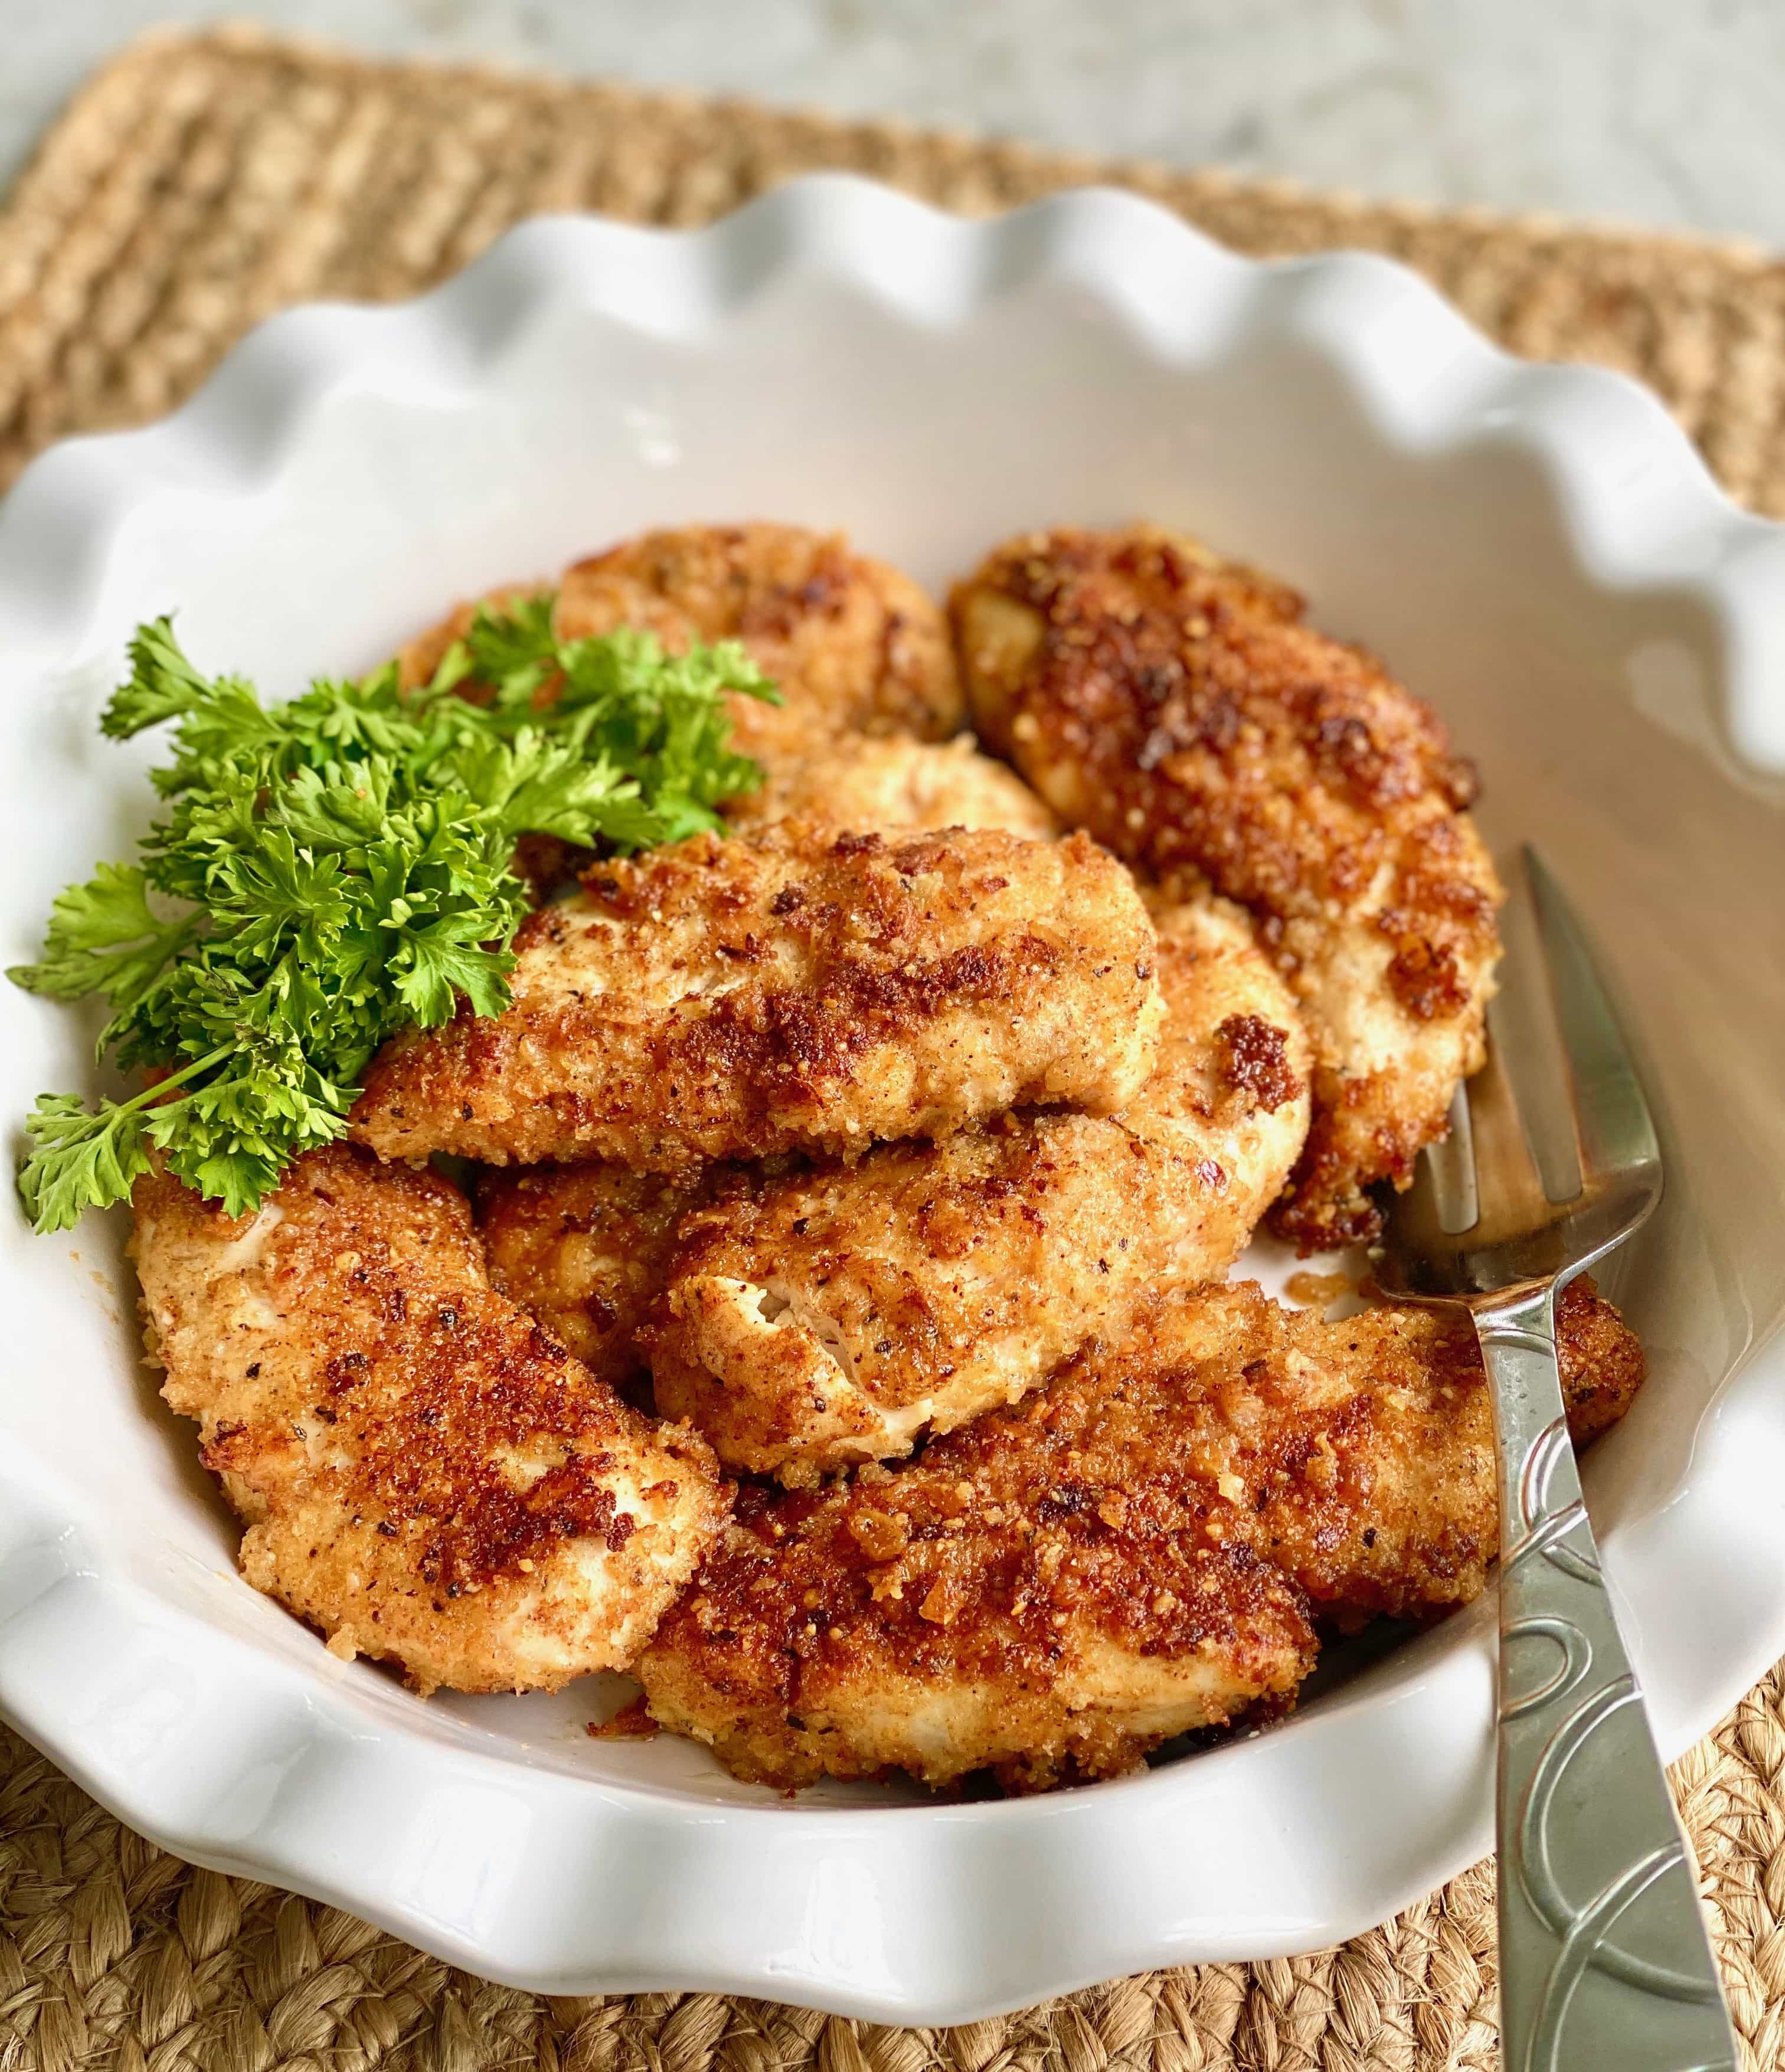 crunchy parmesan chicken in a white bowl with parsley